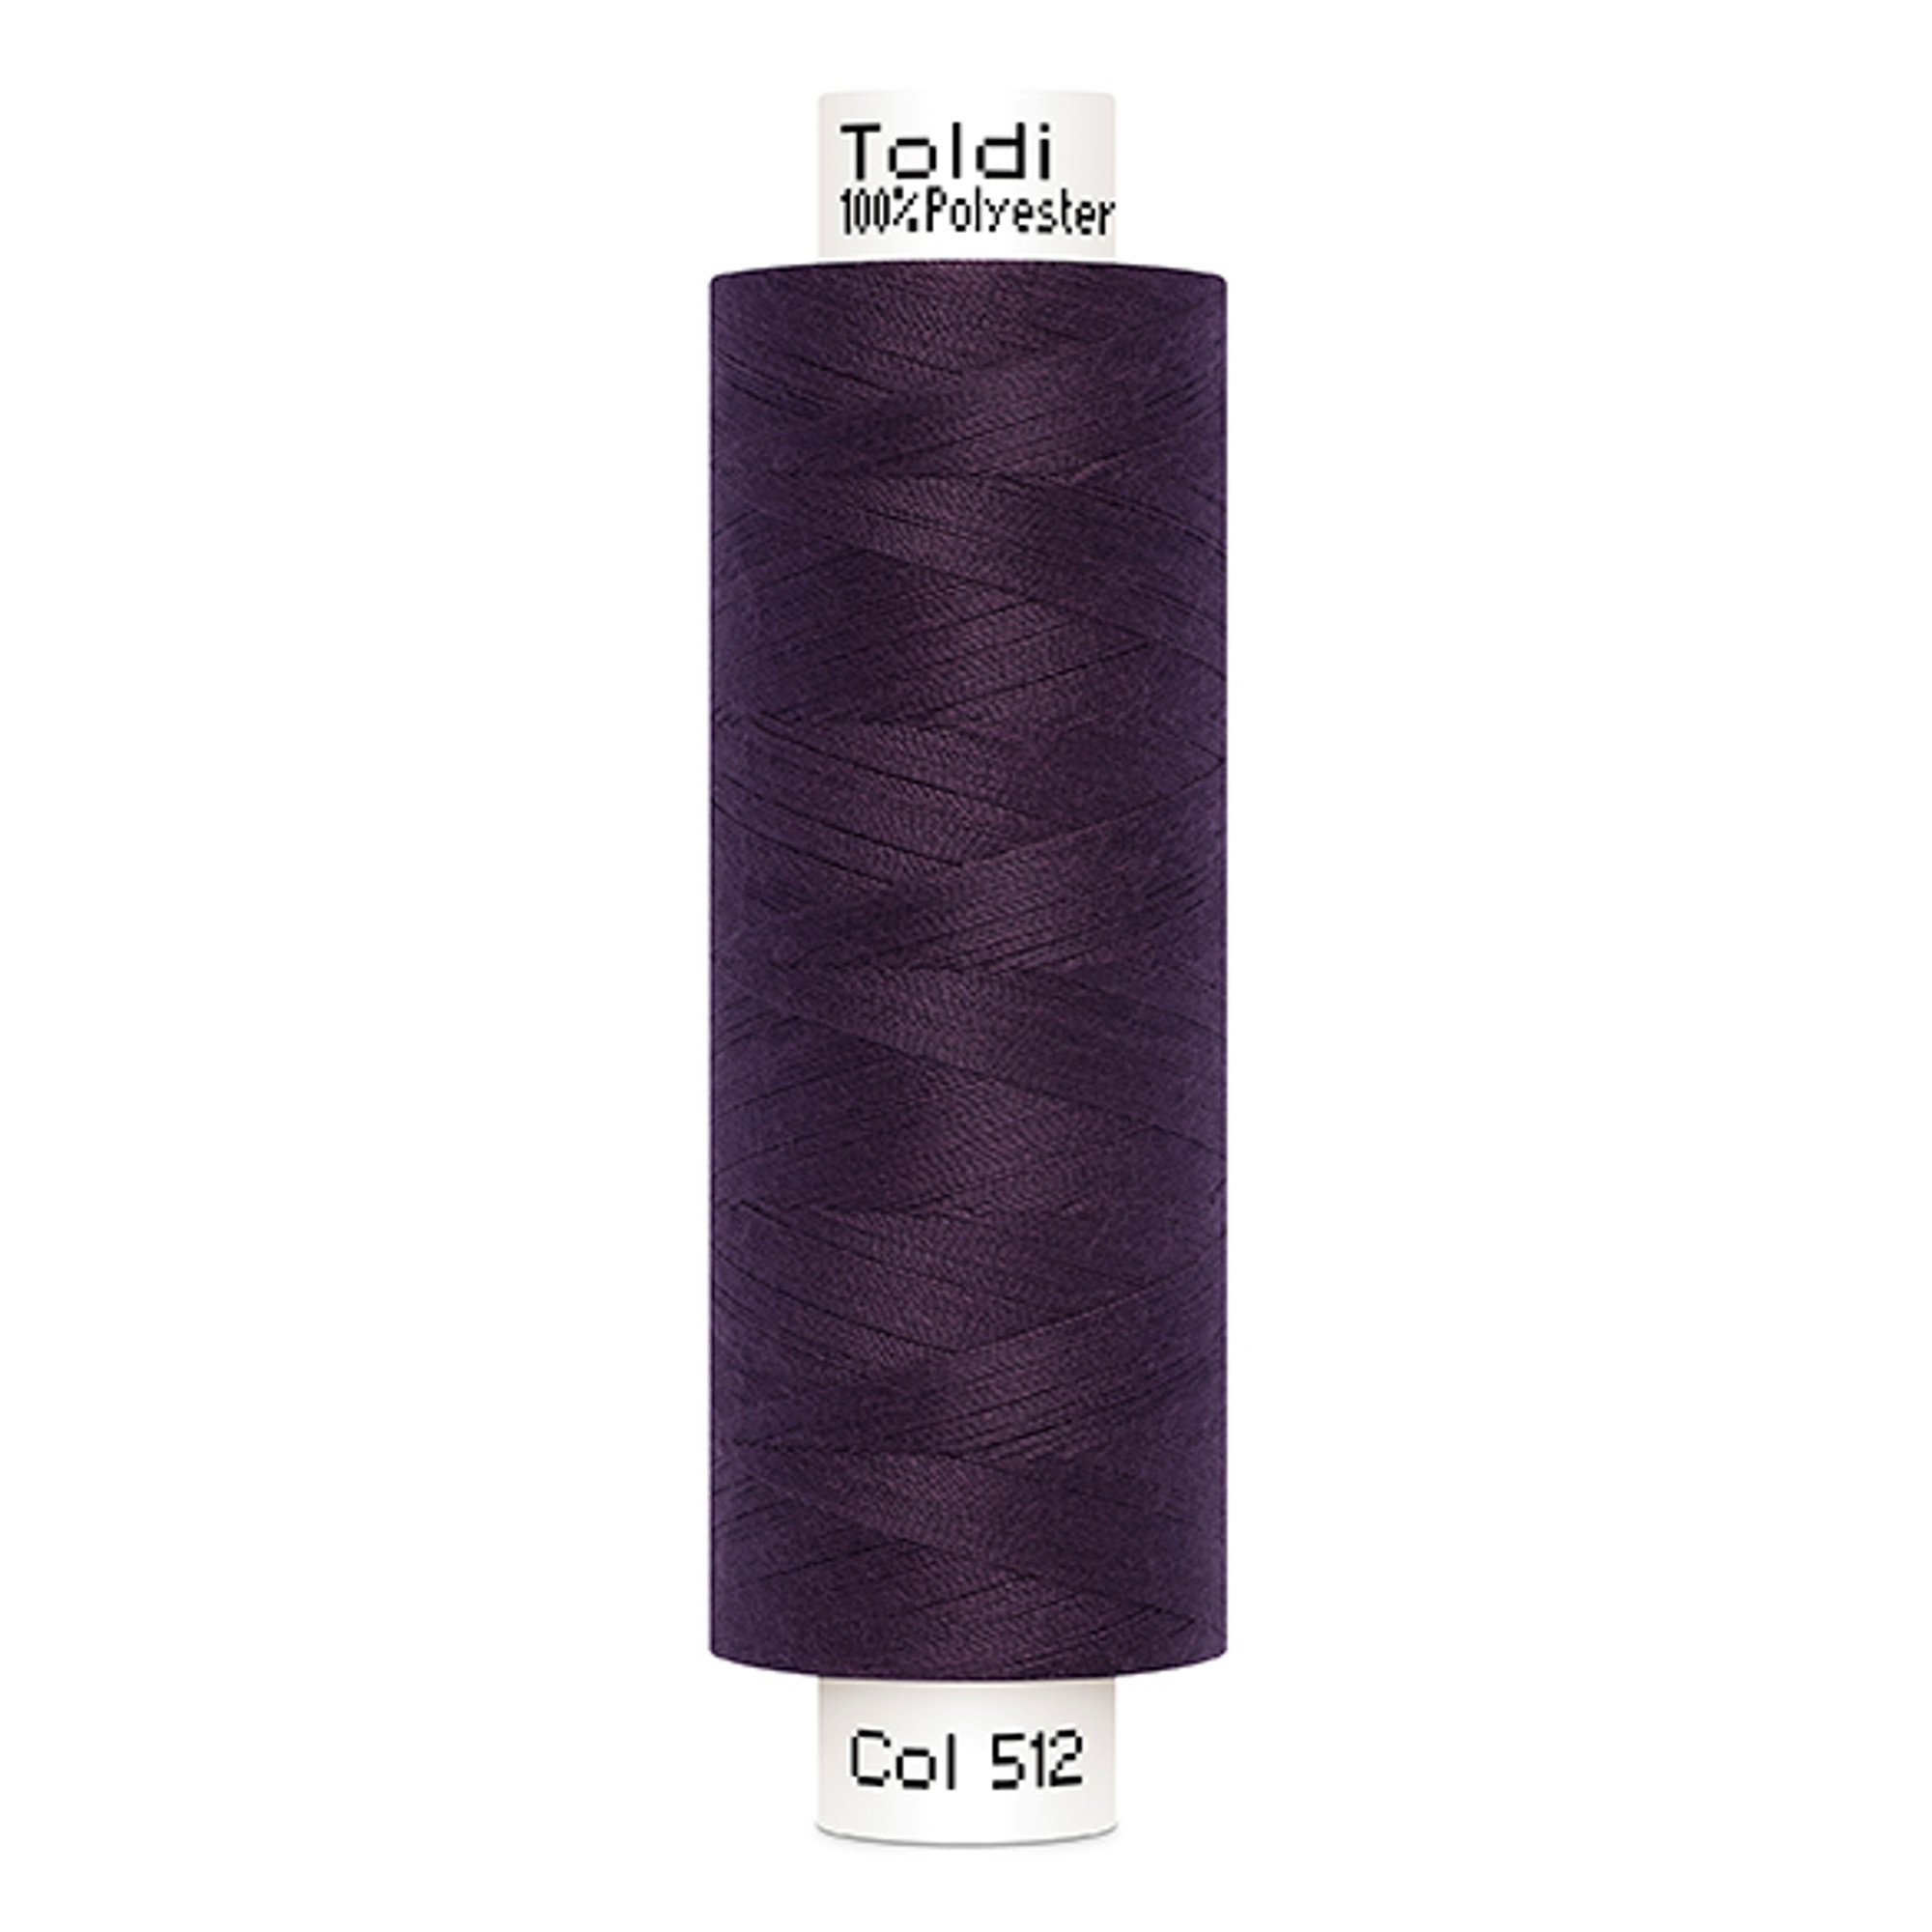 Gütermann Toldi Sewing Thread, 500 m aubergine | 707589-512 |